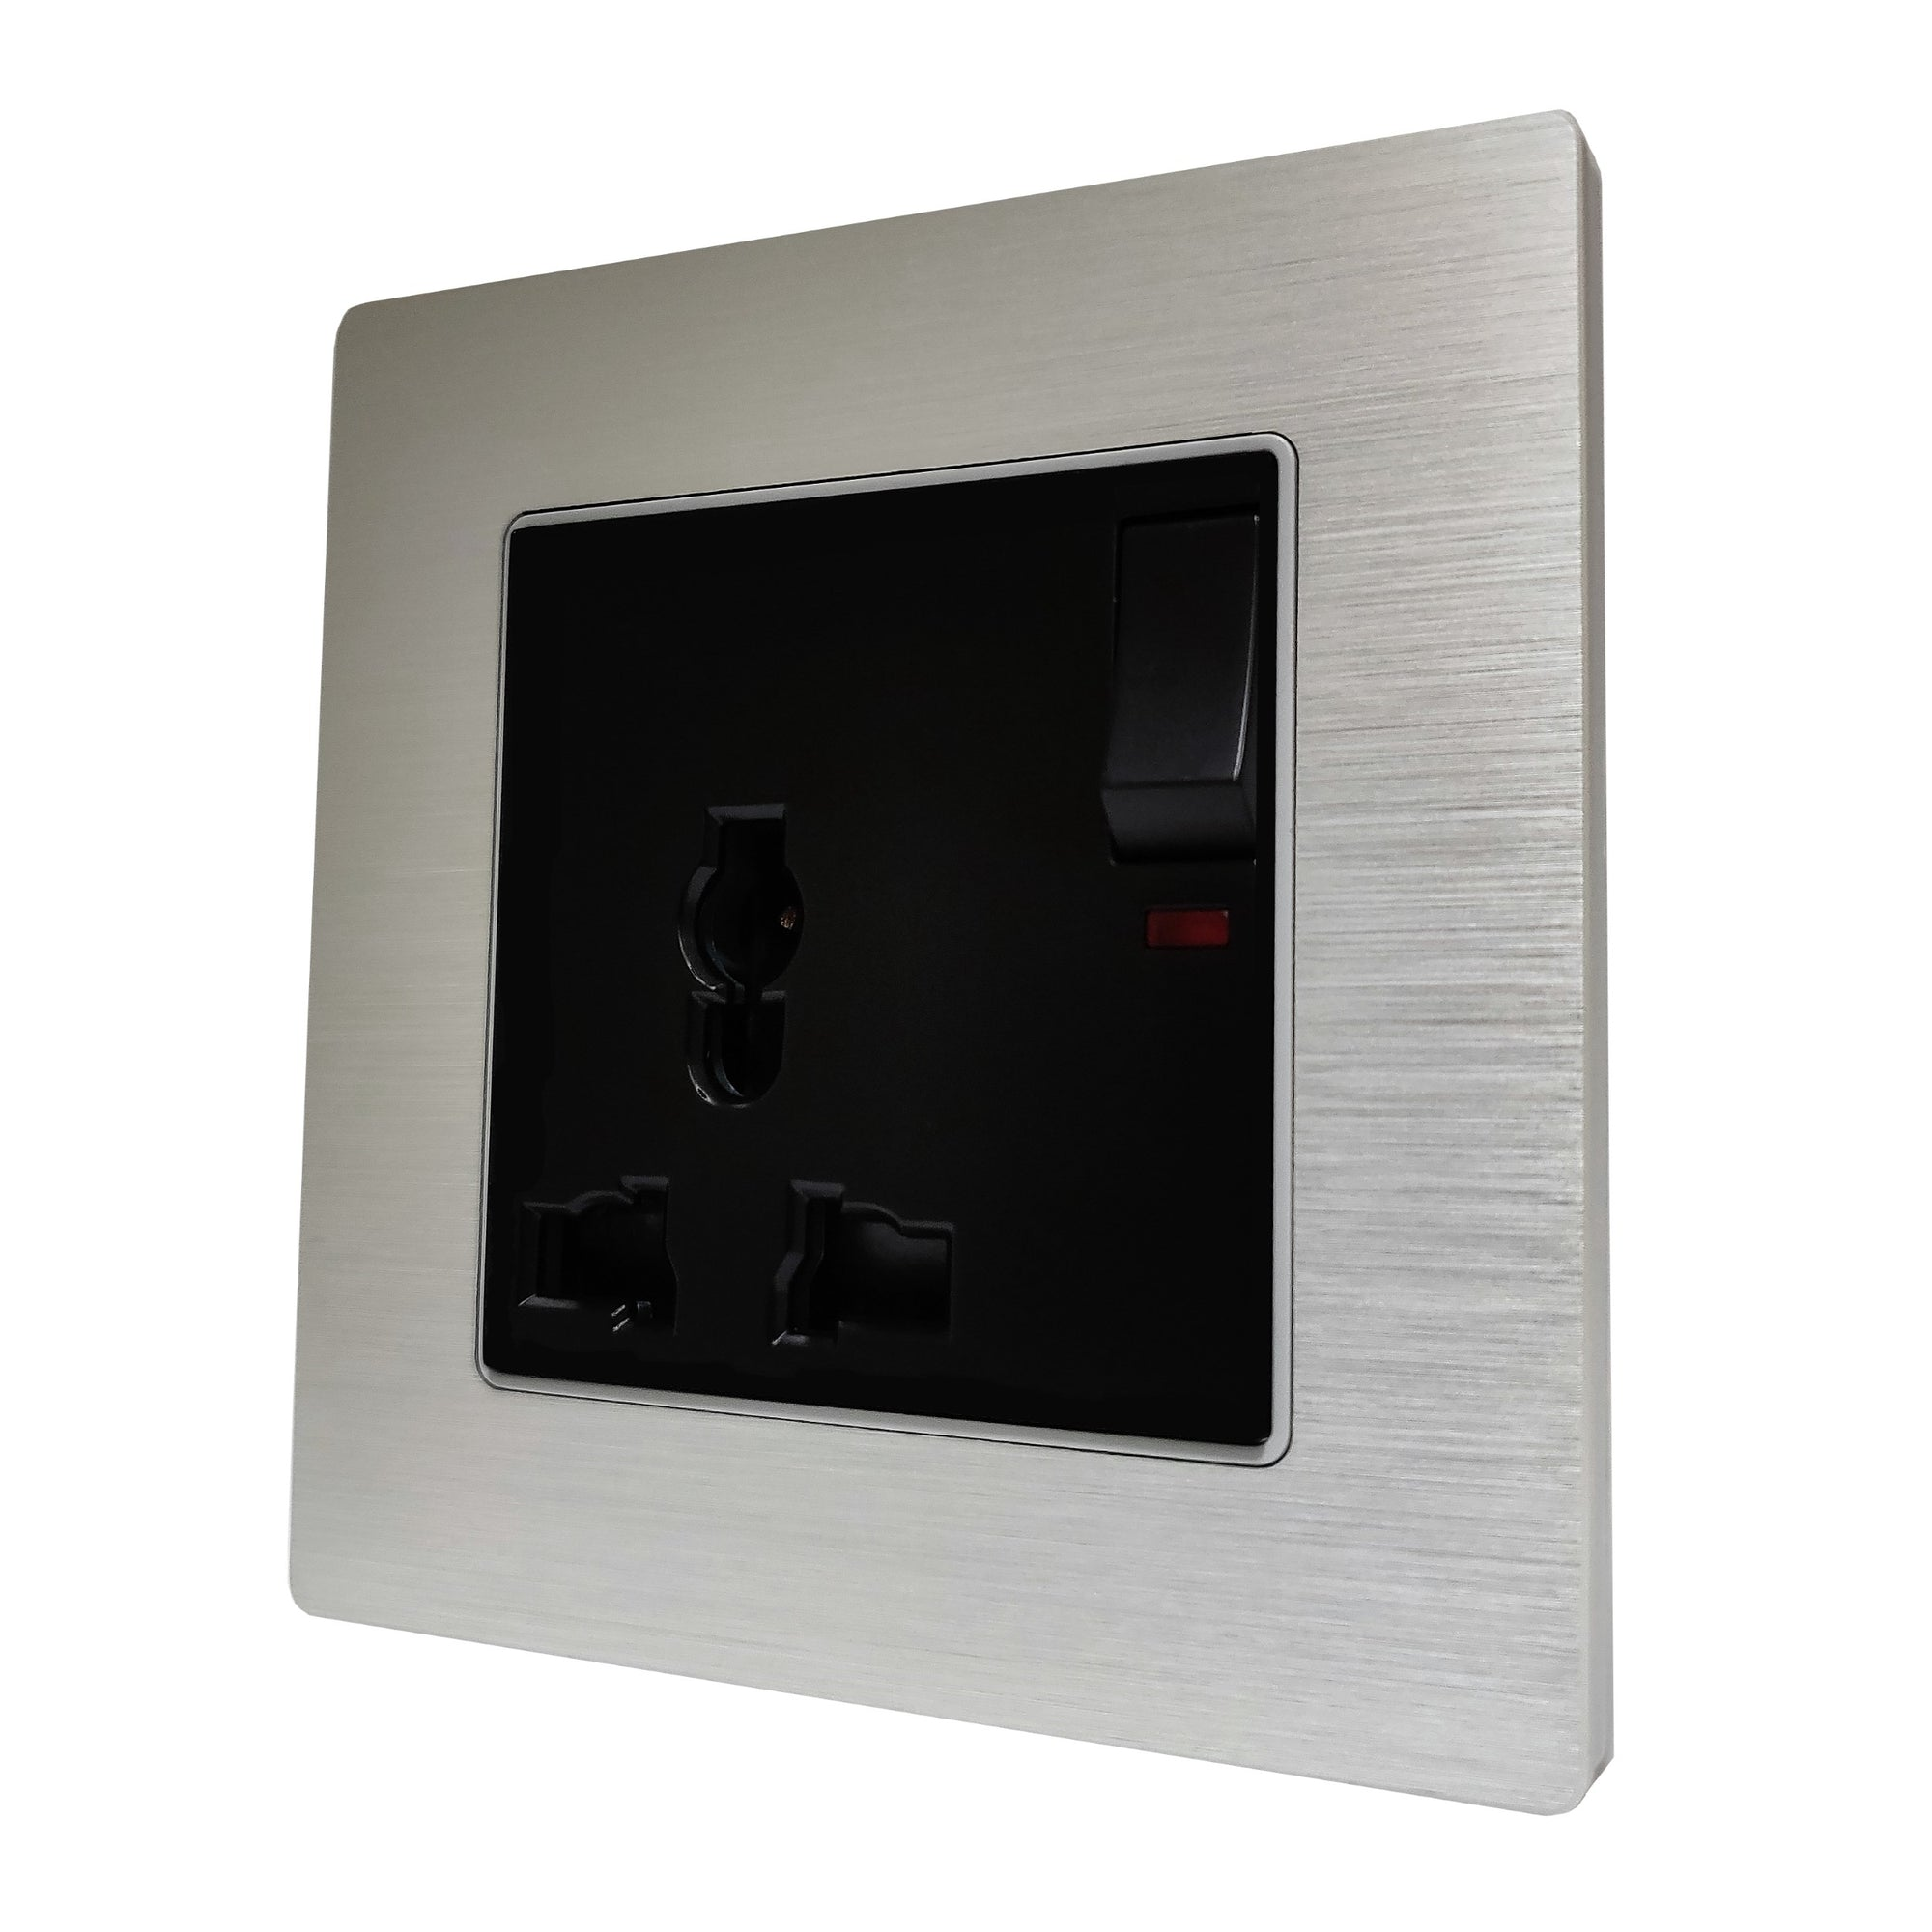 Single Universal Multi-Function AC Wall Power Socket in Silver Brushed Alum Frame & Black Centre